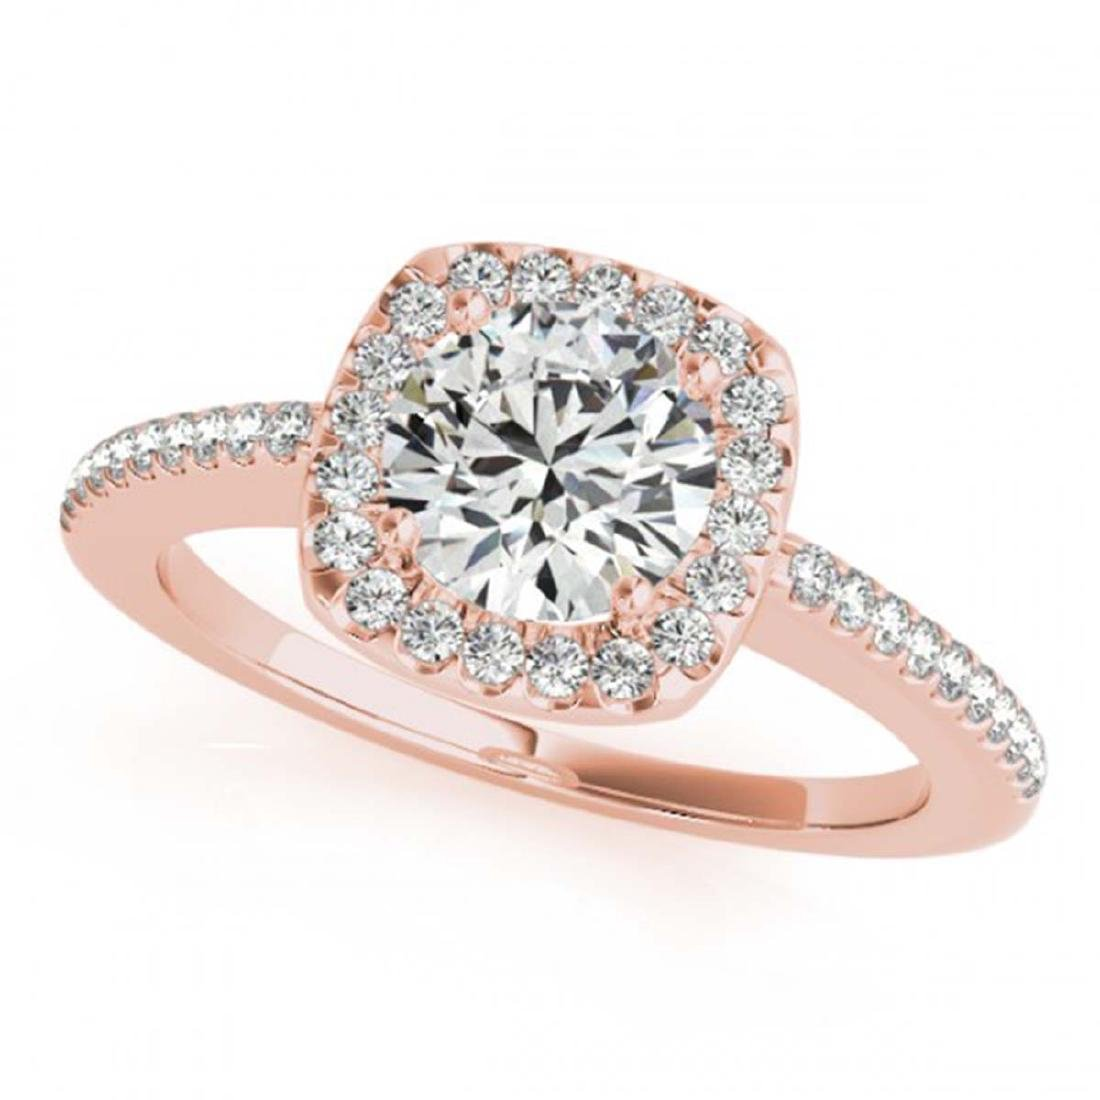 1.25 ctw VS/SI Diamond Solitaire Halo Ring 14K Rose